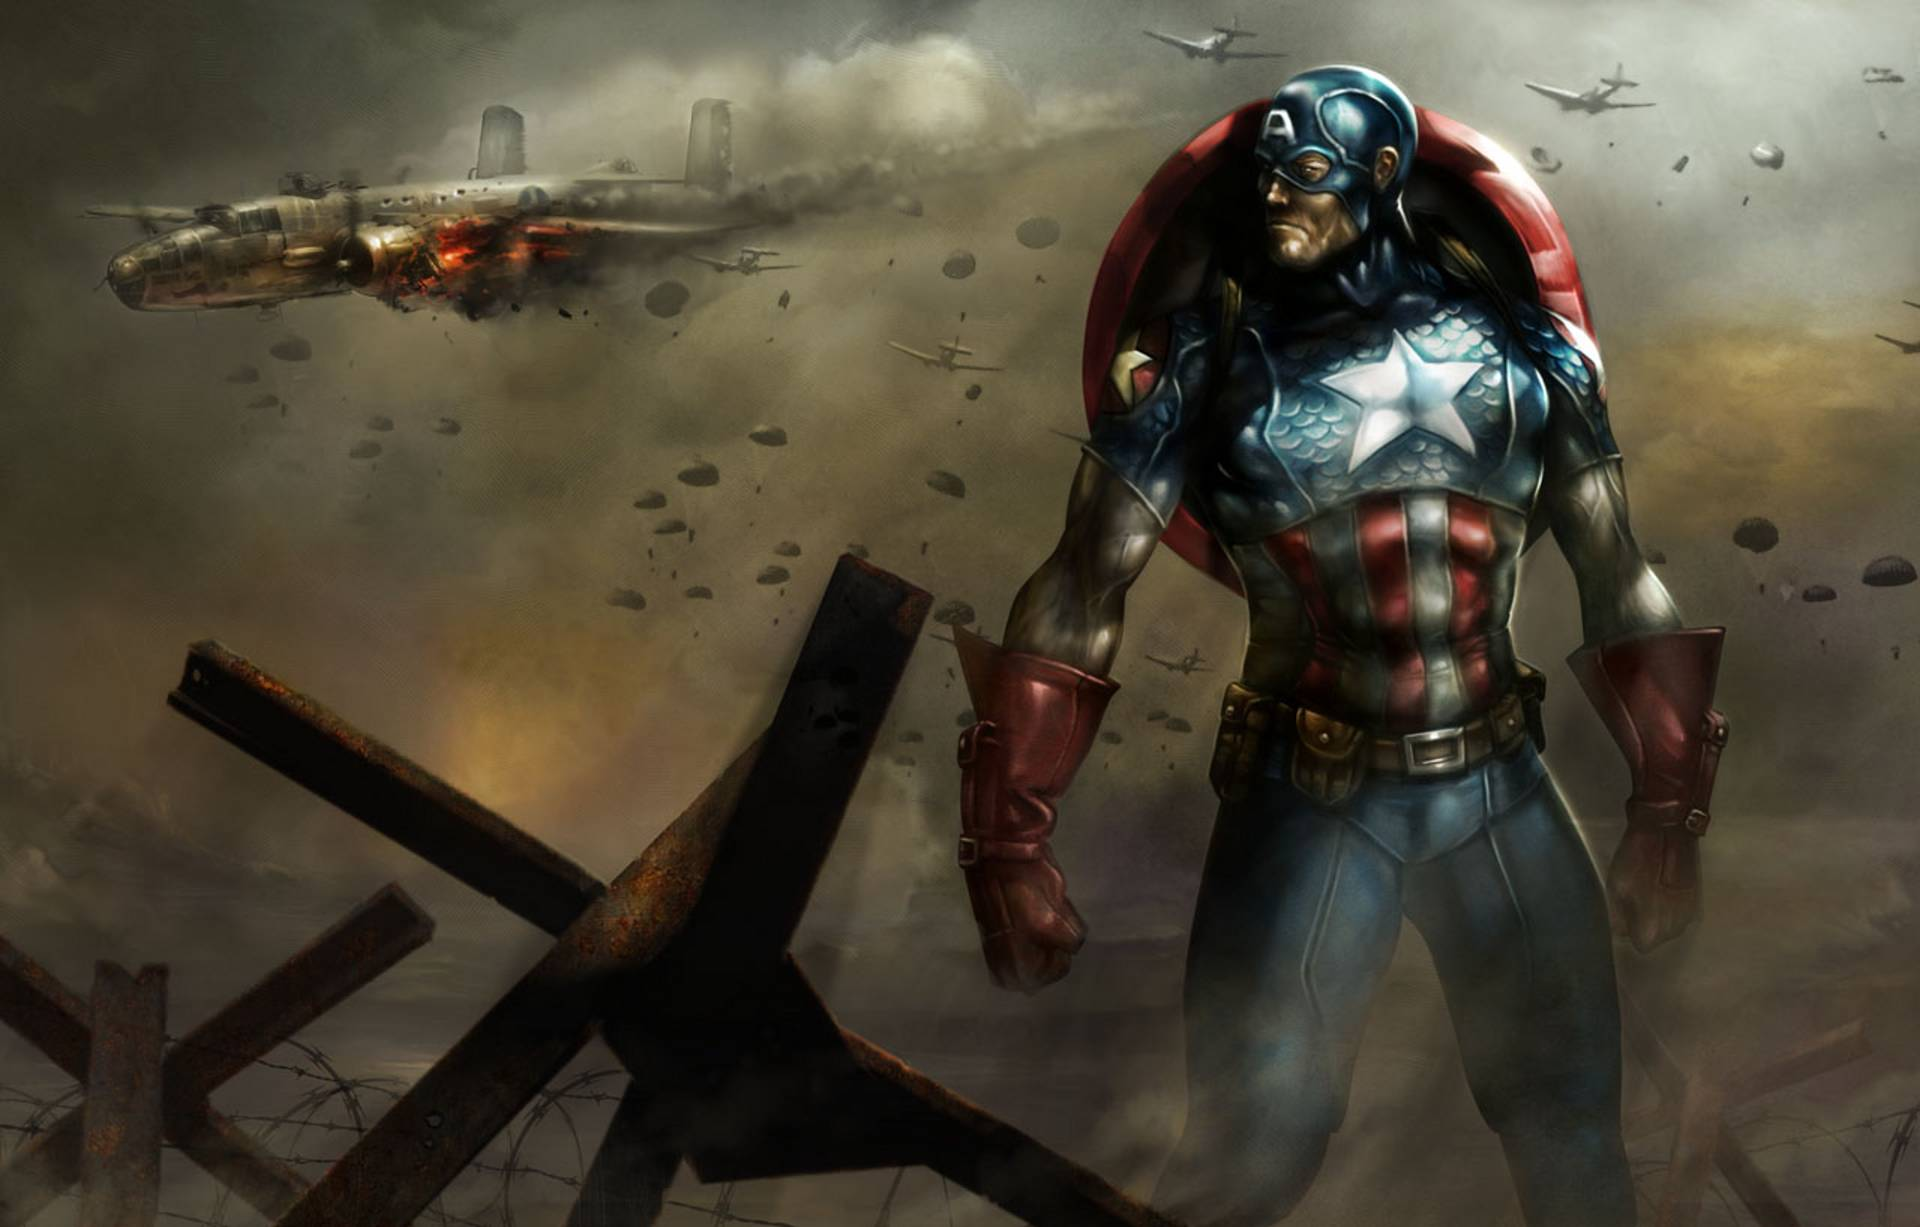 Captain Marvel Fantasy Art Wallpapers Hd Desktop And: 256 Captain America HD Wallpapers